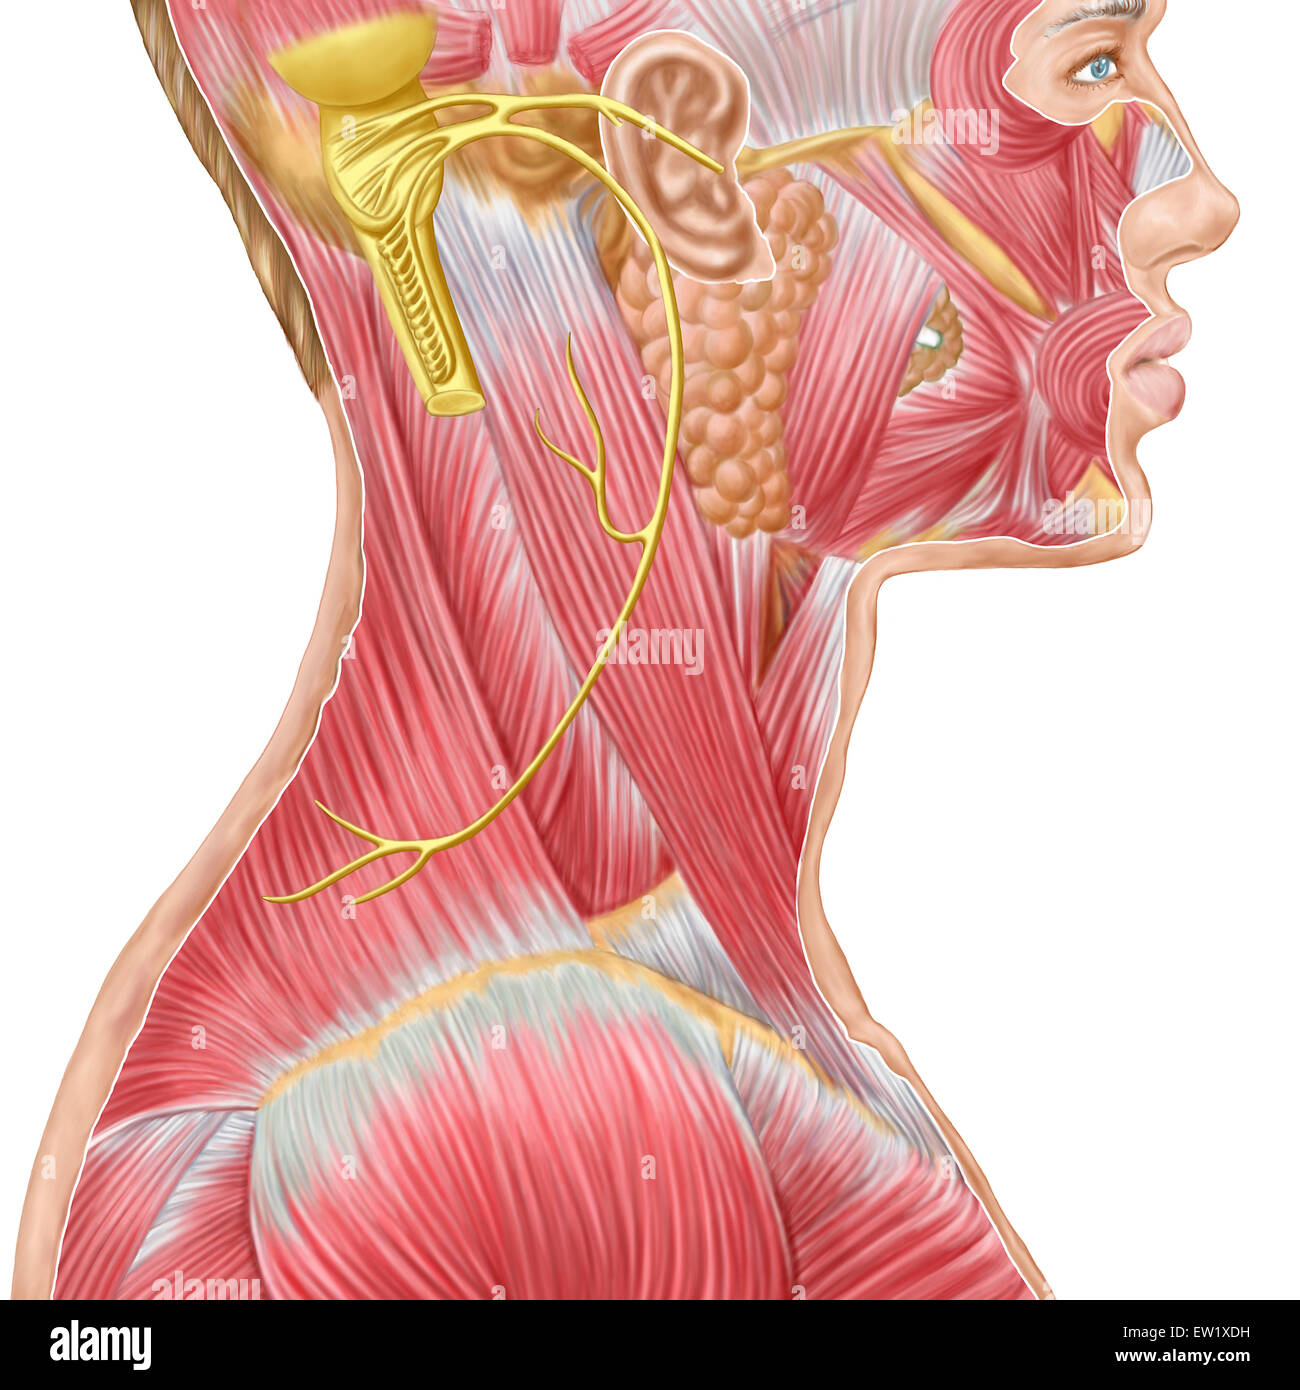 Masseter Muscle Stock Photos Masseter Muscle Stock Images Alamy